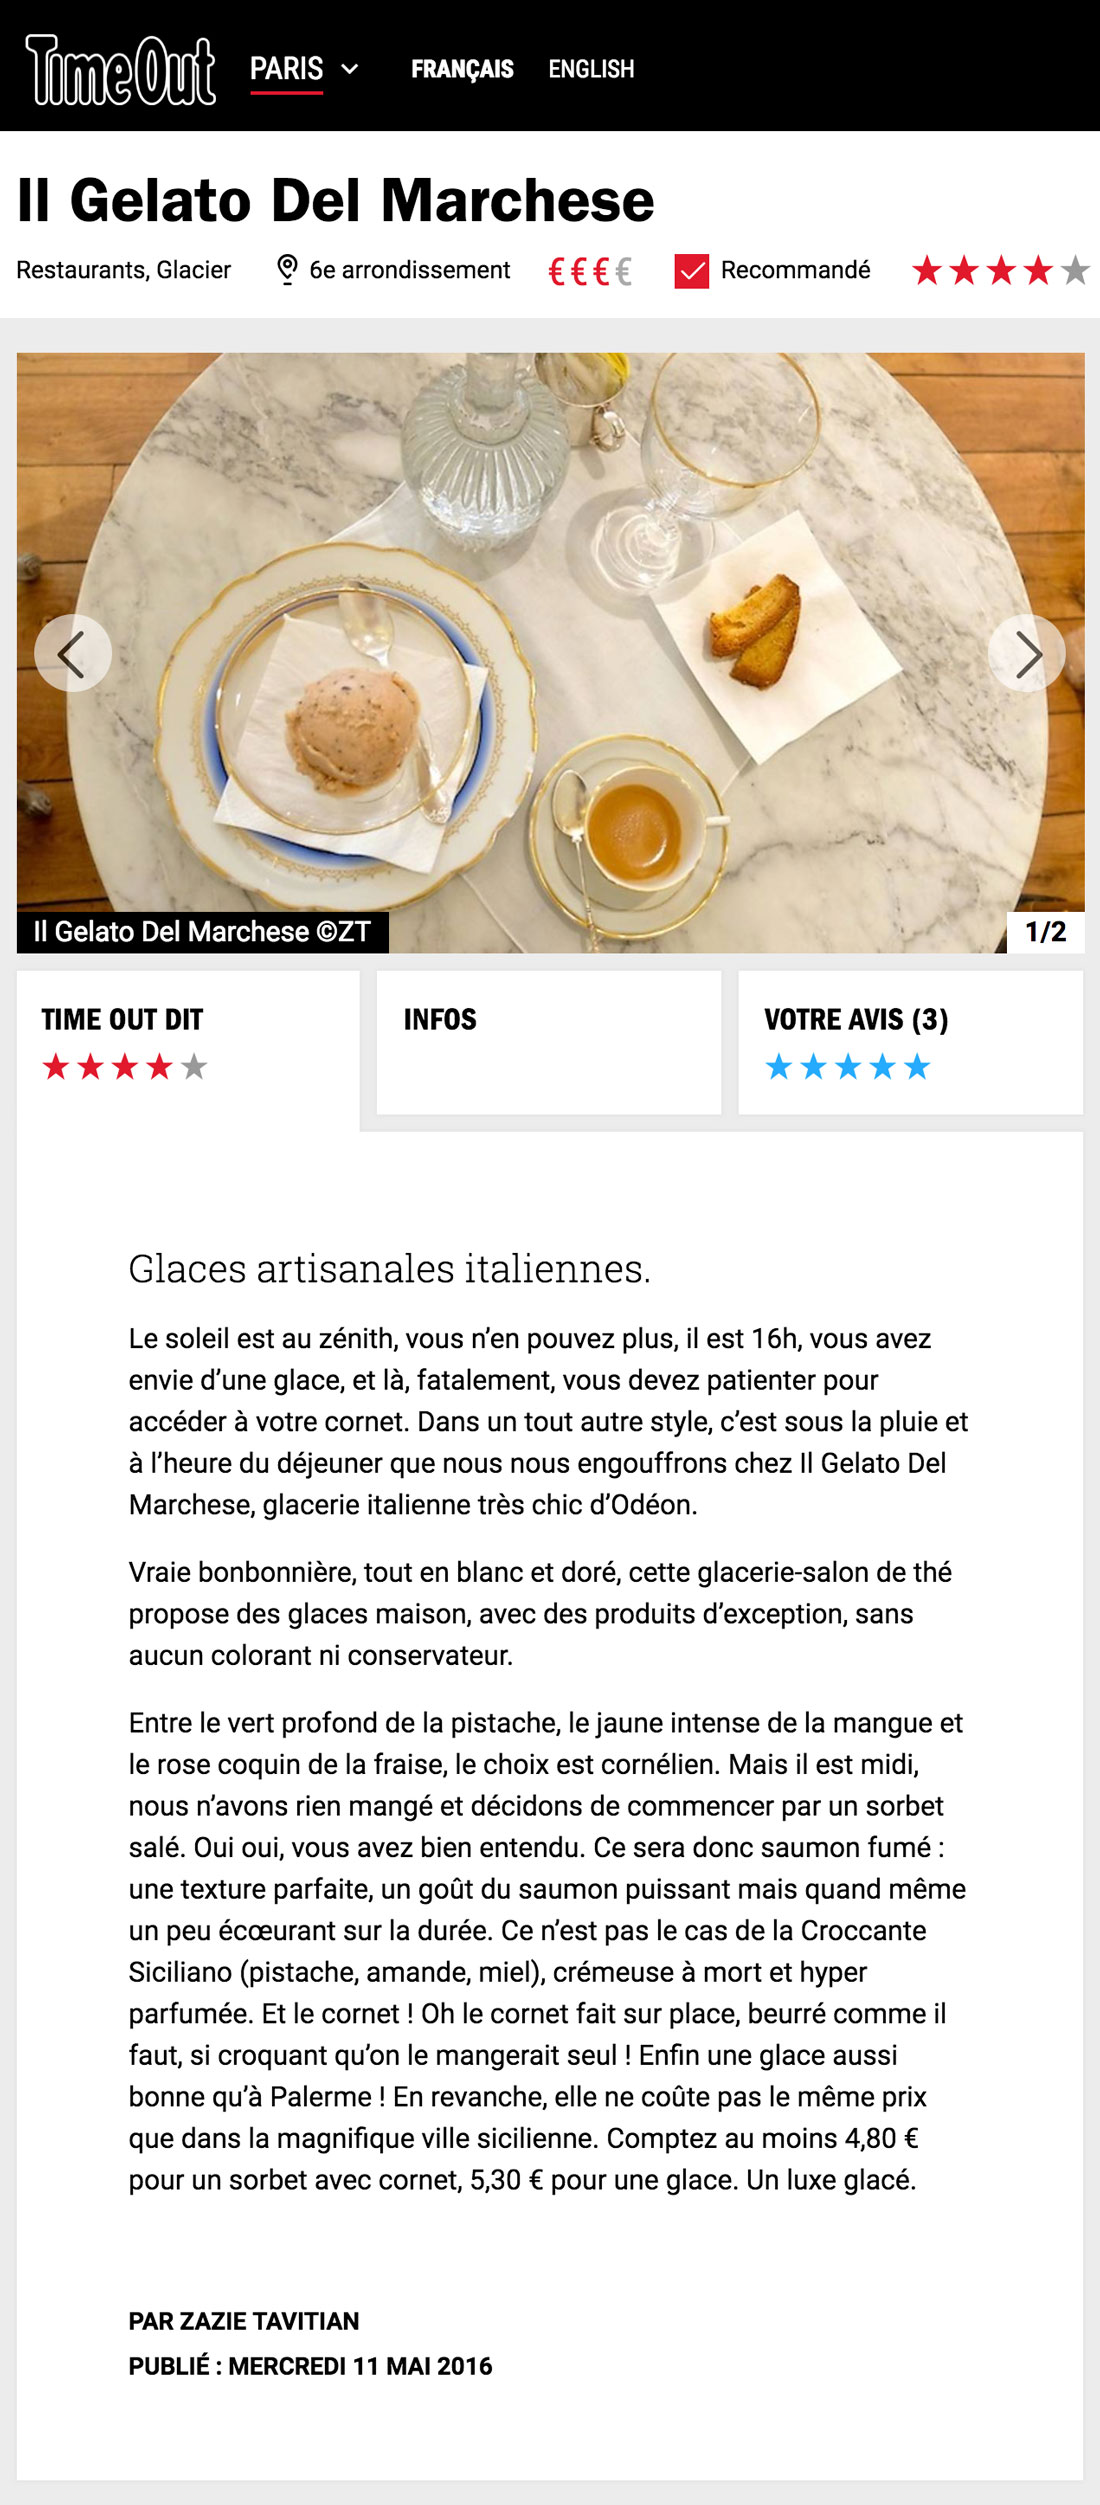 timeout-fr-paris-restaurants-il-gelato-del-marchese-mai2016